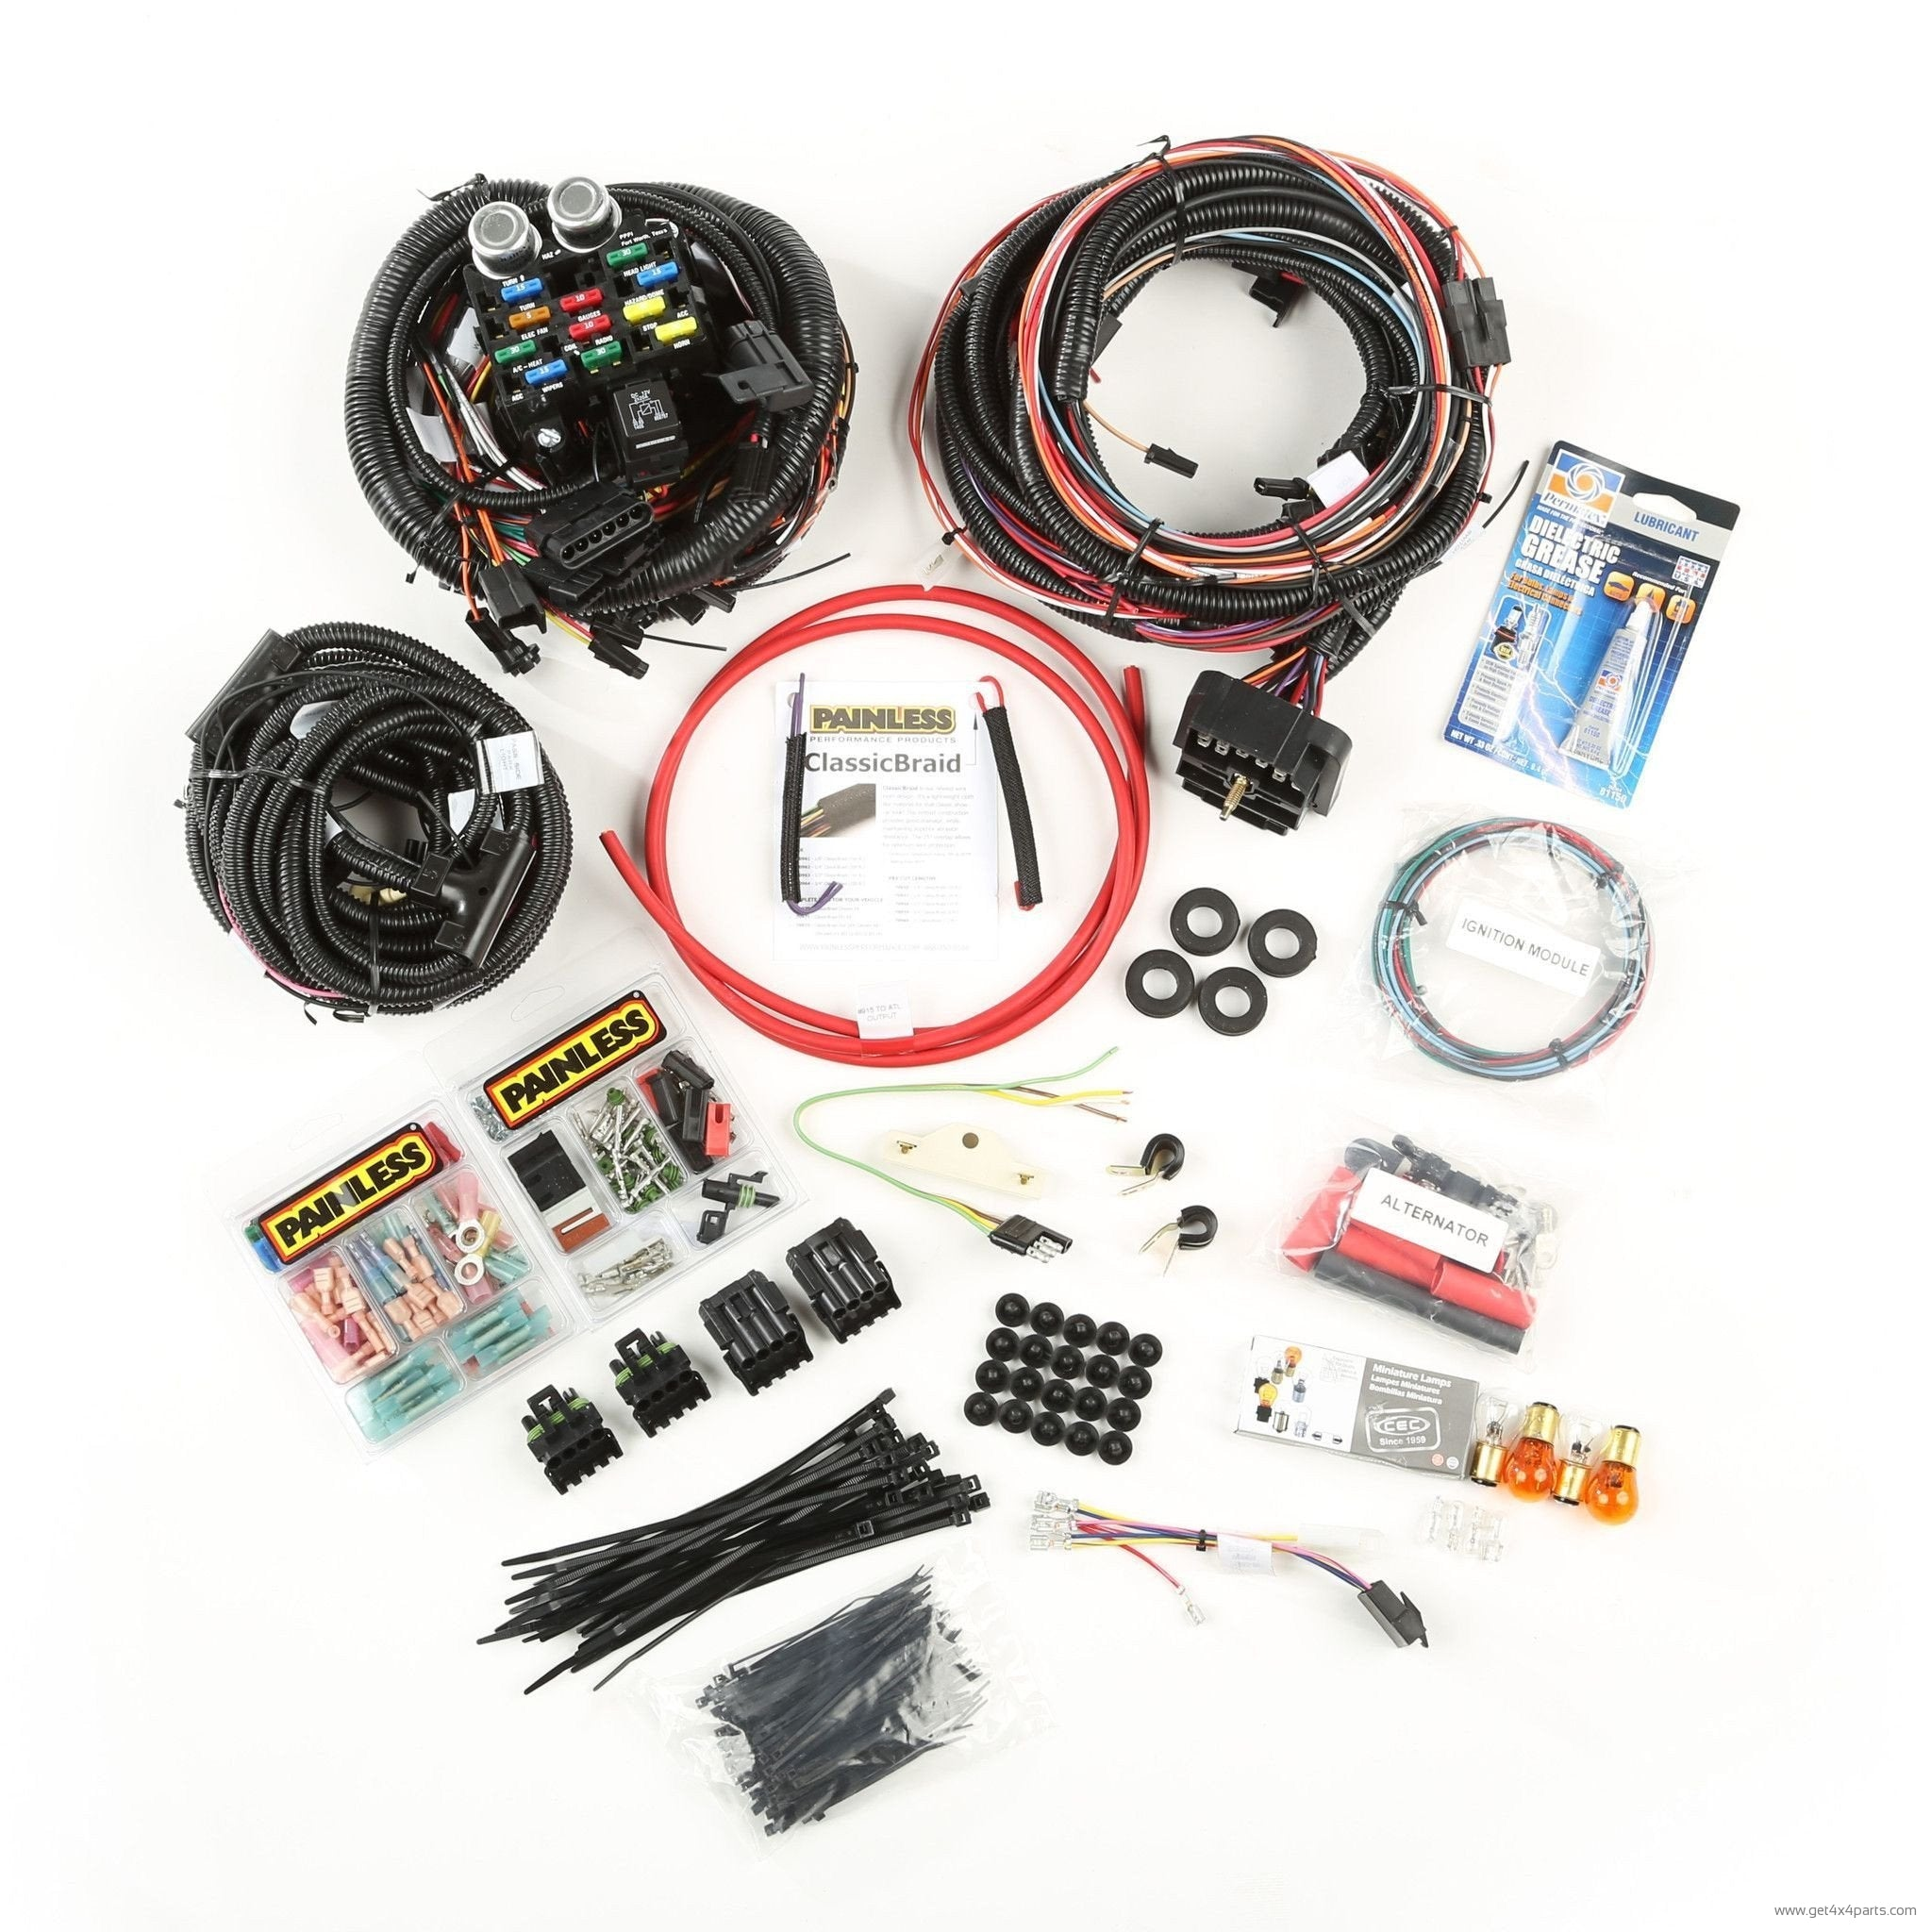 painless wiring harness 76 86 jeep cj models painless wiring harness 76 86 jeep cj?v\\\\\\\=1503517452 coleman 48203b876 mach internal wiring diagram coleman wiring  at reclaimingppi.co